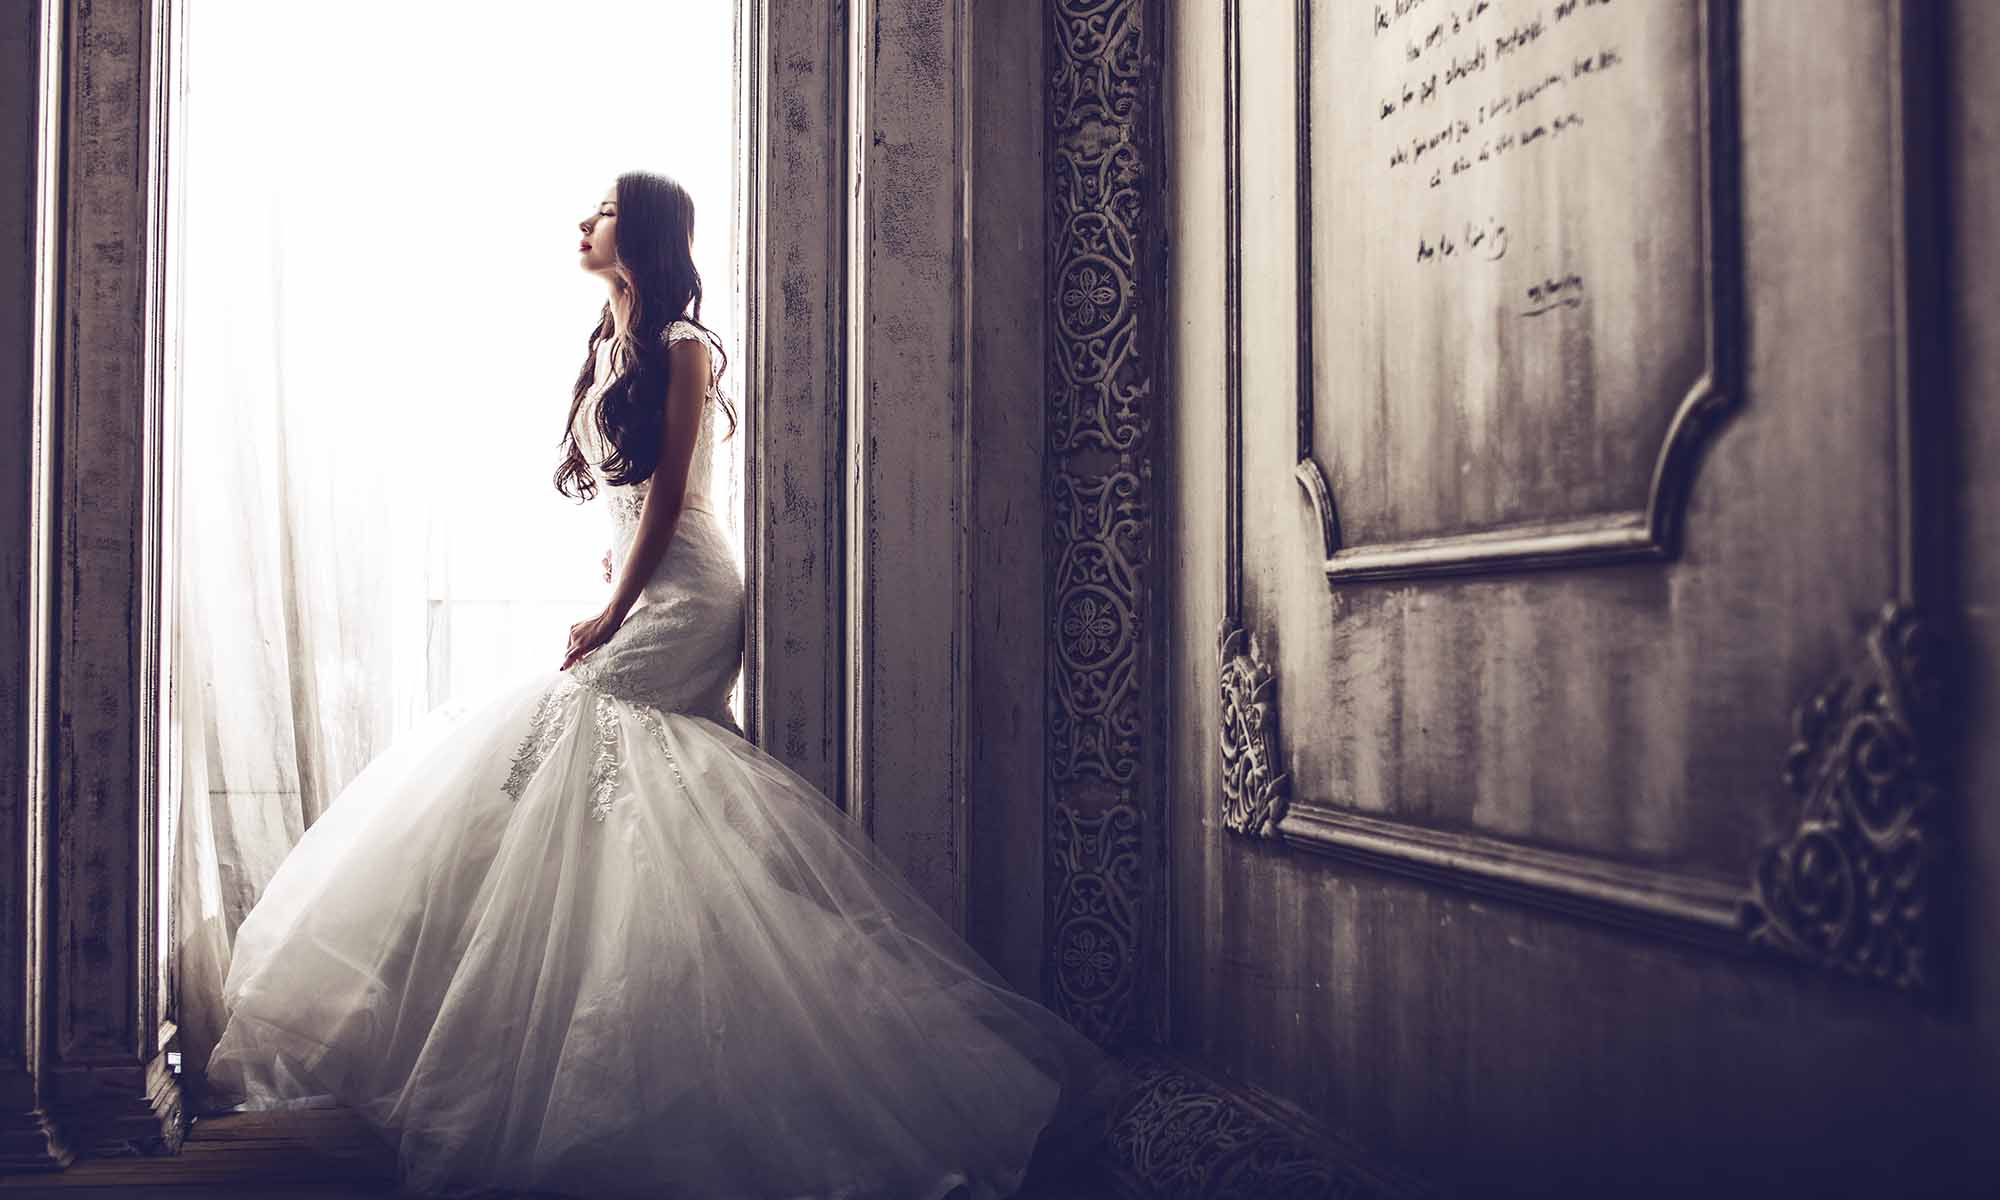 4 Tips to Look Your Best on Your Wedding Day